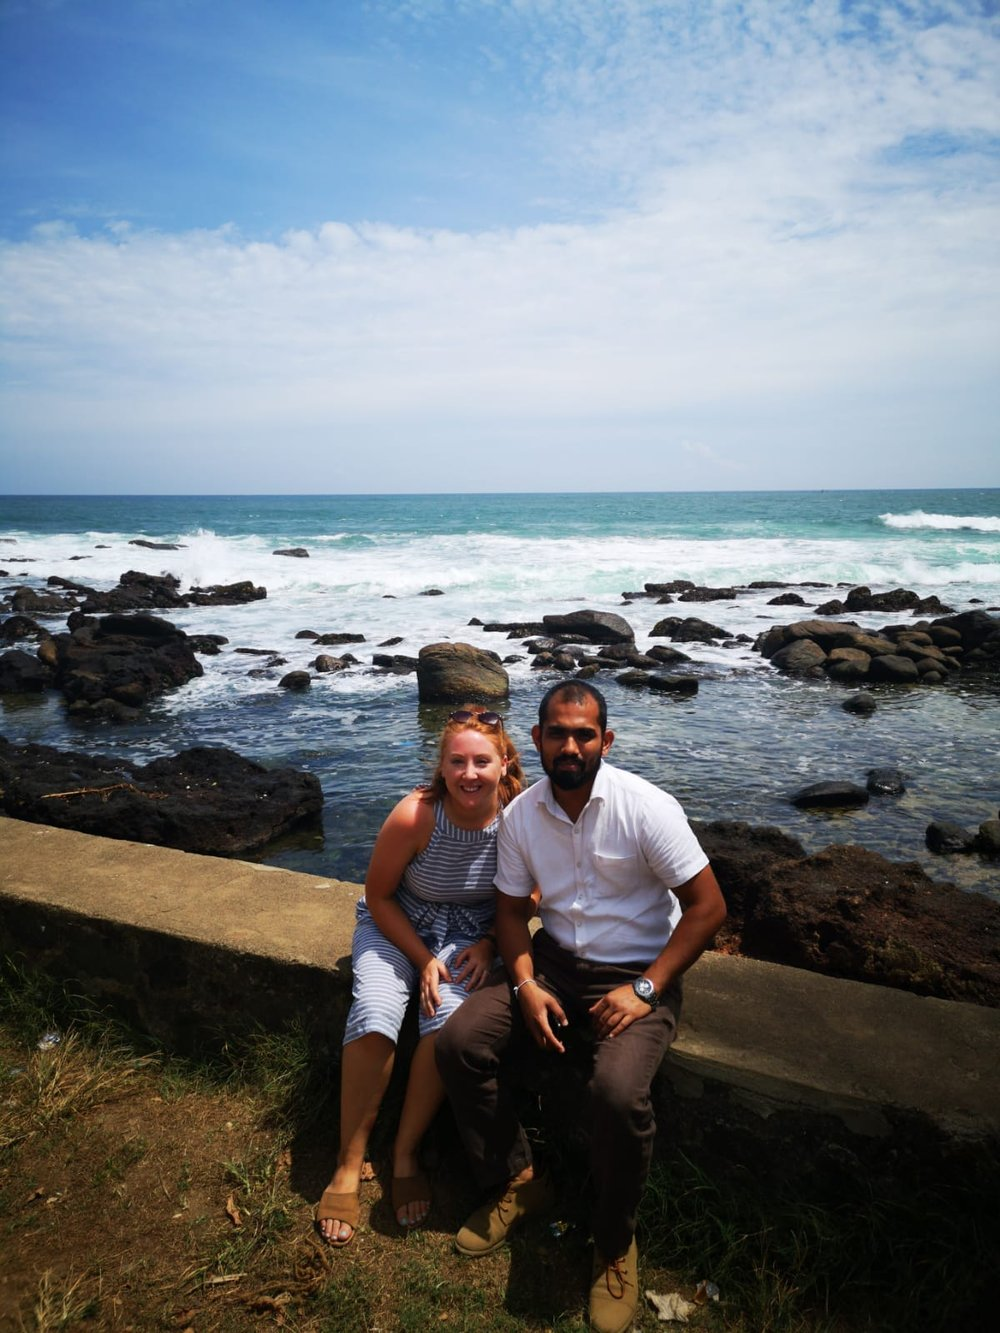 invite-to-paradise-sri-lanka-holiday-honeymoon-specialists-customer-feedback-elin-jordan-luce-chauffeur-guide-ruchira-galle-ocean.JPG